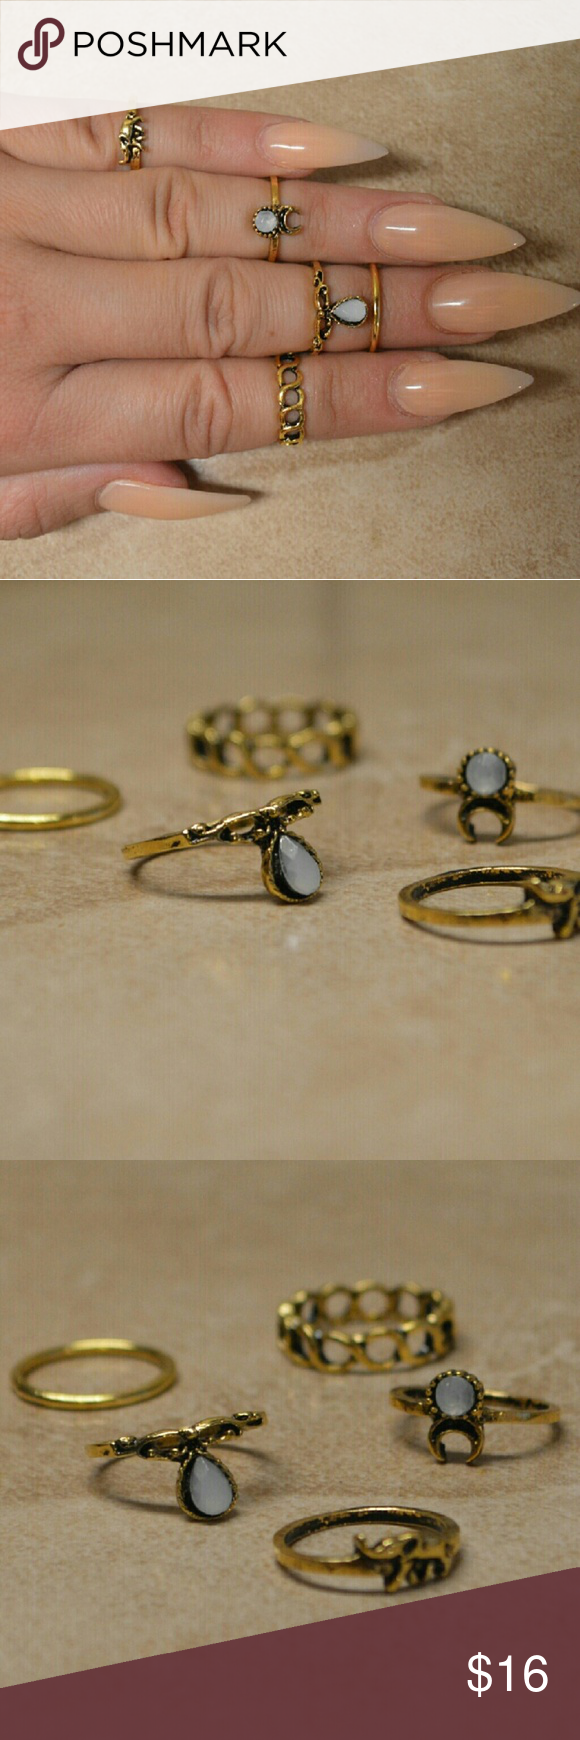 Brand New Set of 5 Bohemian Hippie Gold Rings Brand New Set of 5 Bohemian Hippie Gold Rings  Comes with five adorable gold rings. Great for stacking to create a Boho chic look or wearing alone. Look great as midi or knuckle rings or wear each as a more traditional ring.  Different designs including Gypsy, geometric, floral, stone, etc.   Mixed sizes 5 and 6. Jewelry Rings